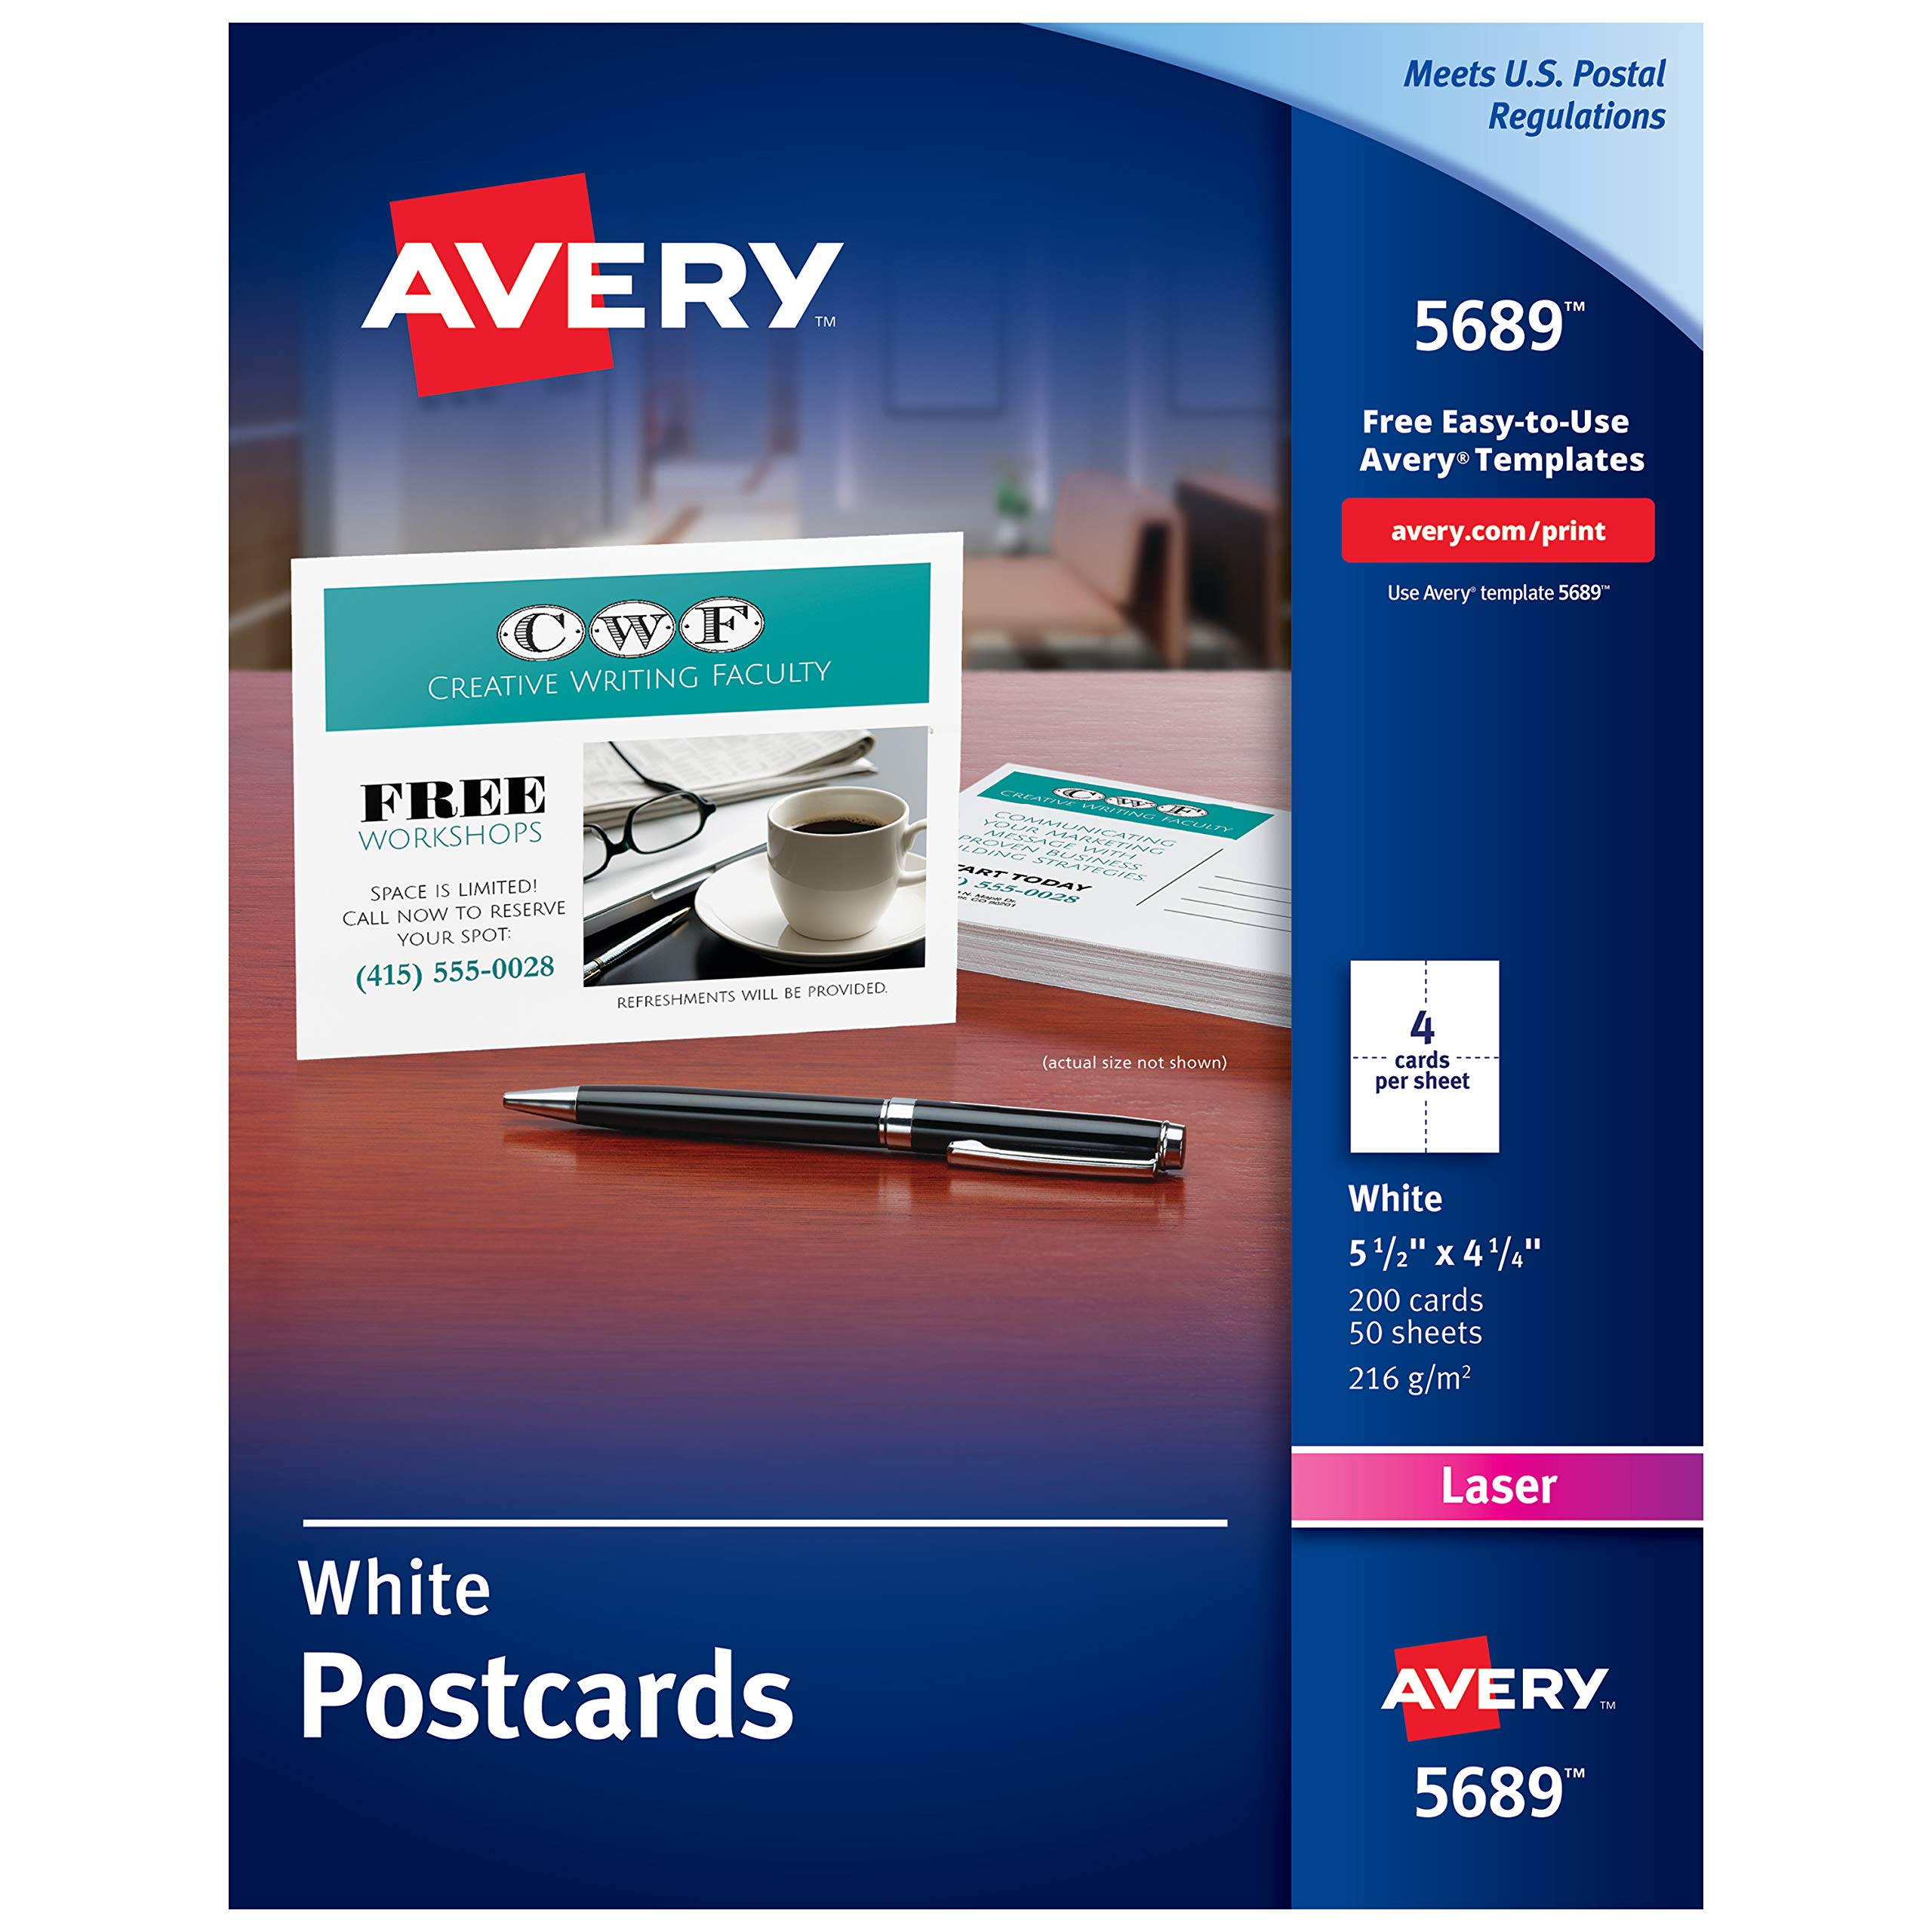 Avery Printable Cards, Laser Printers, 200 Cards, 4.25 x 5.5, U.S. Post Card Size (5689) by AVERY